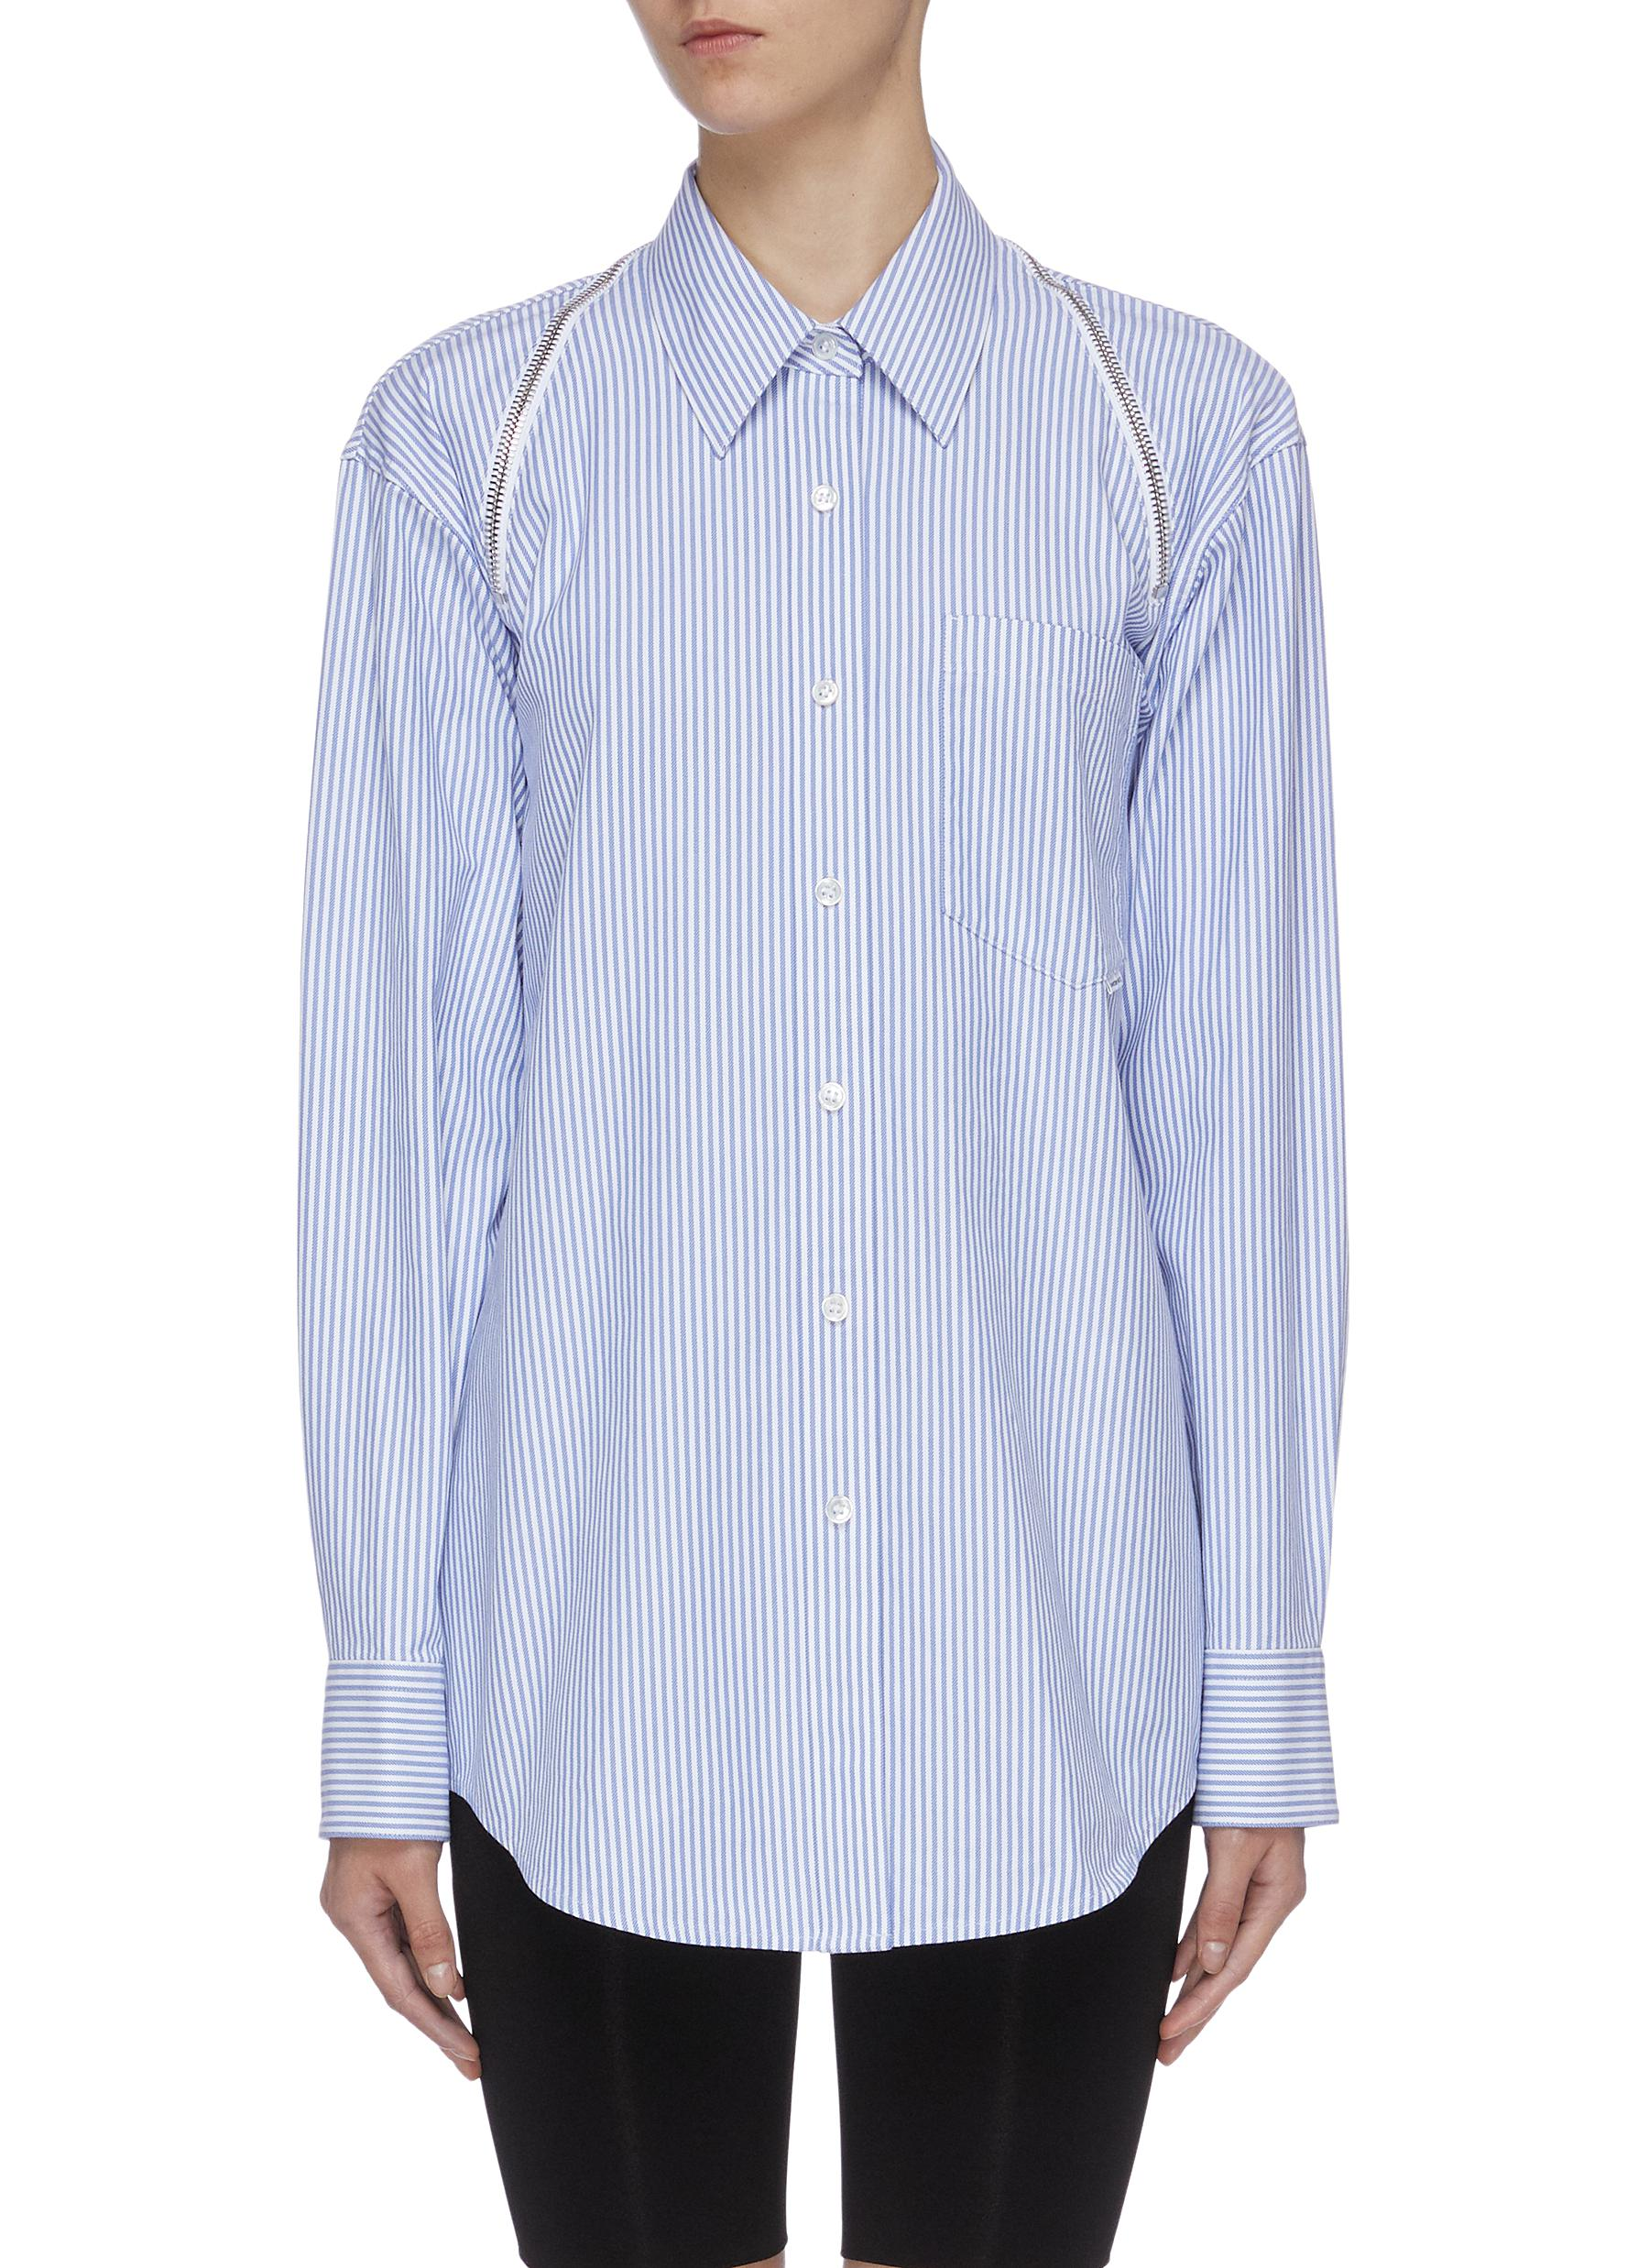 Zip shoulder patch pocket stripe twill shirt by Alexanderwang